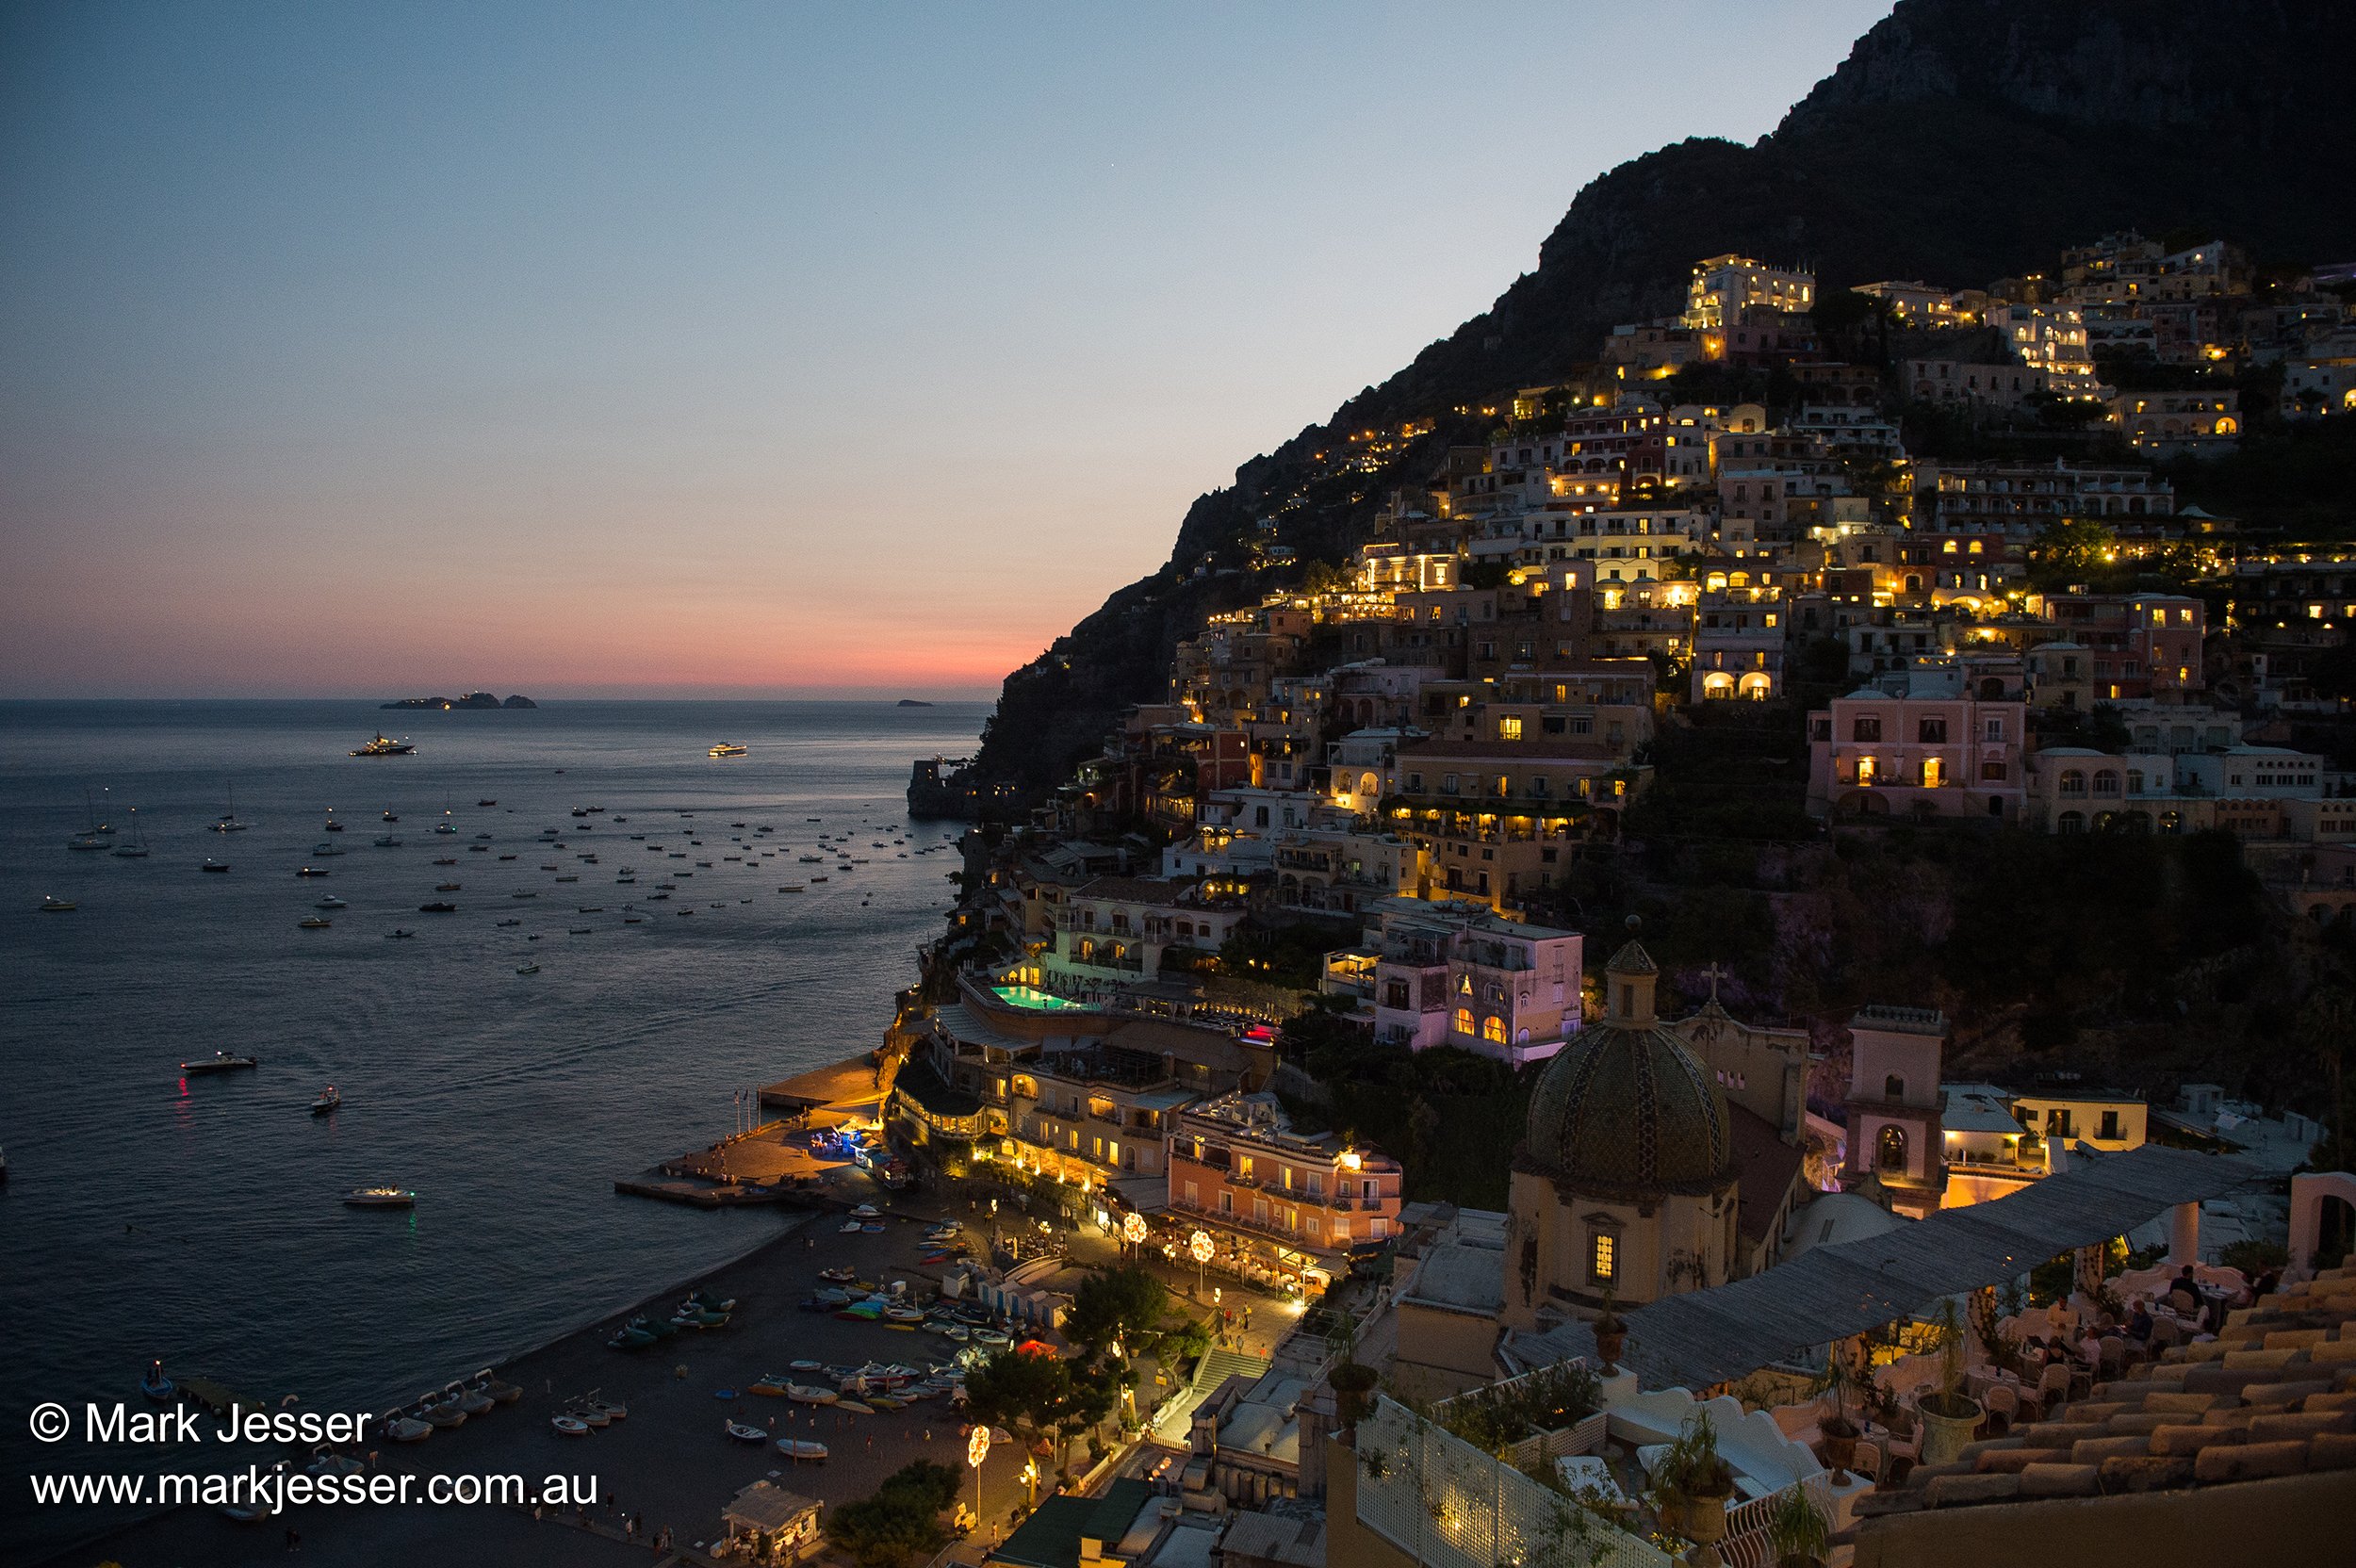 (Photo Mark Jesser) Positano, Italy. - Dusk.